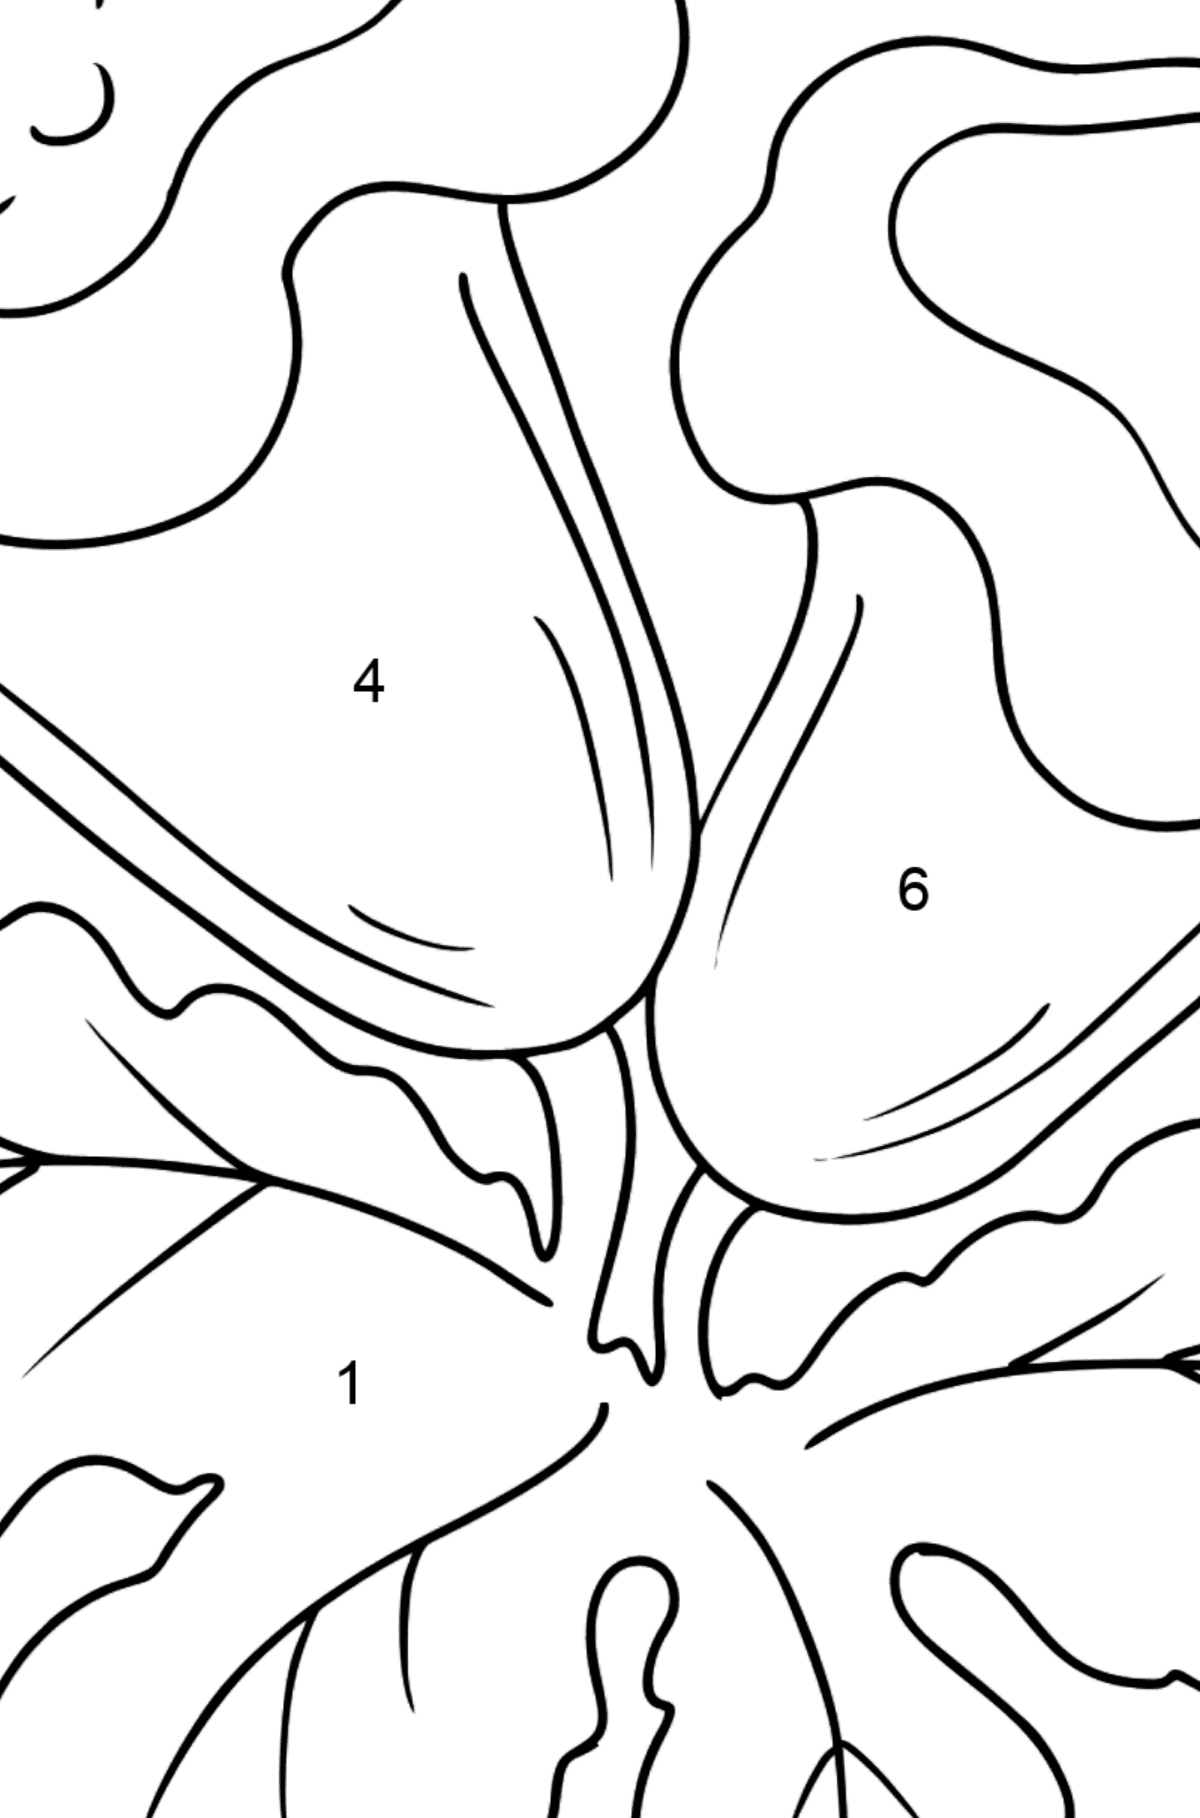 Coloring Page - Indoor flowers - Coloring by Numbers for Kids